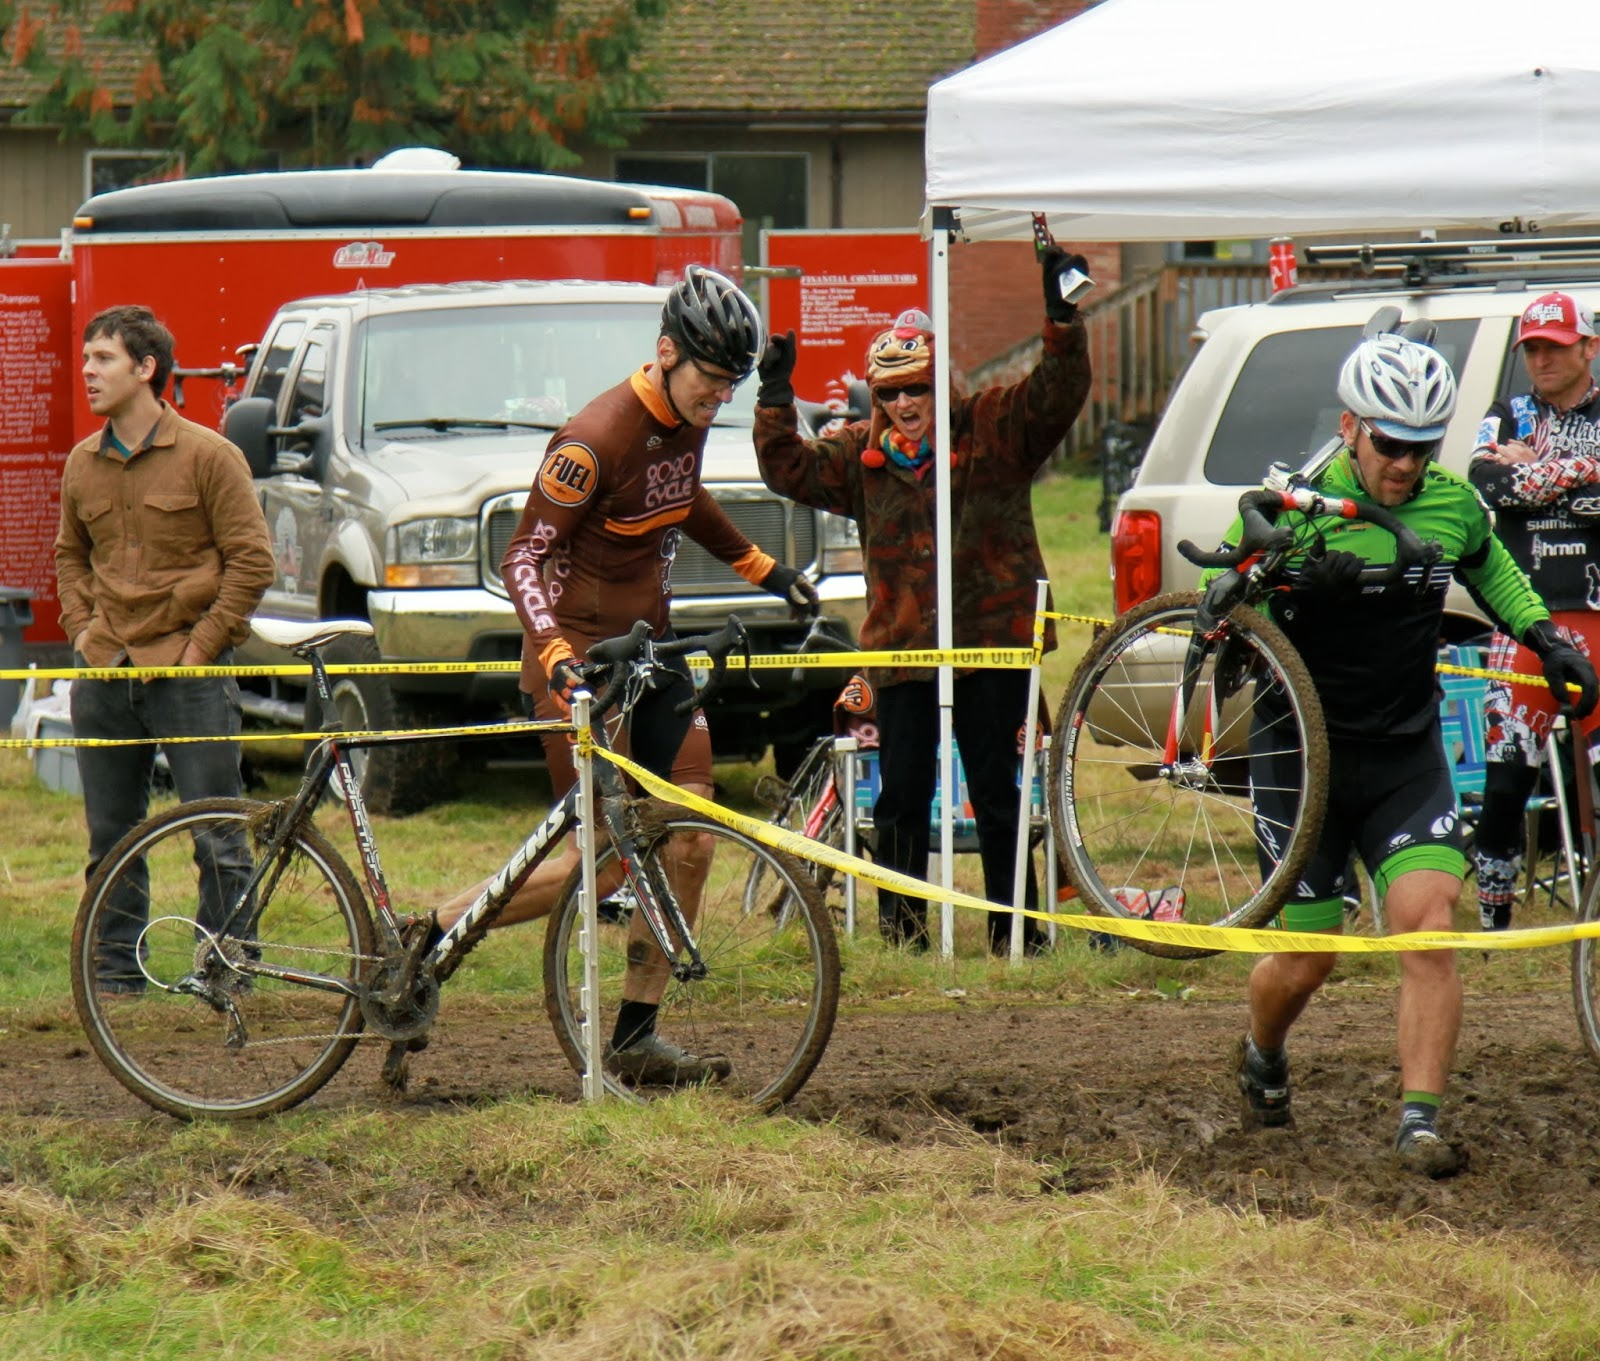 evo davo scx 2 2013 tall chief cyclocross race report and photos. Black Bedroom Furniture Sets. Home Design Ideas